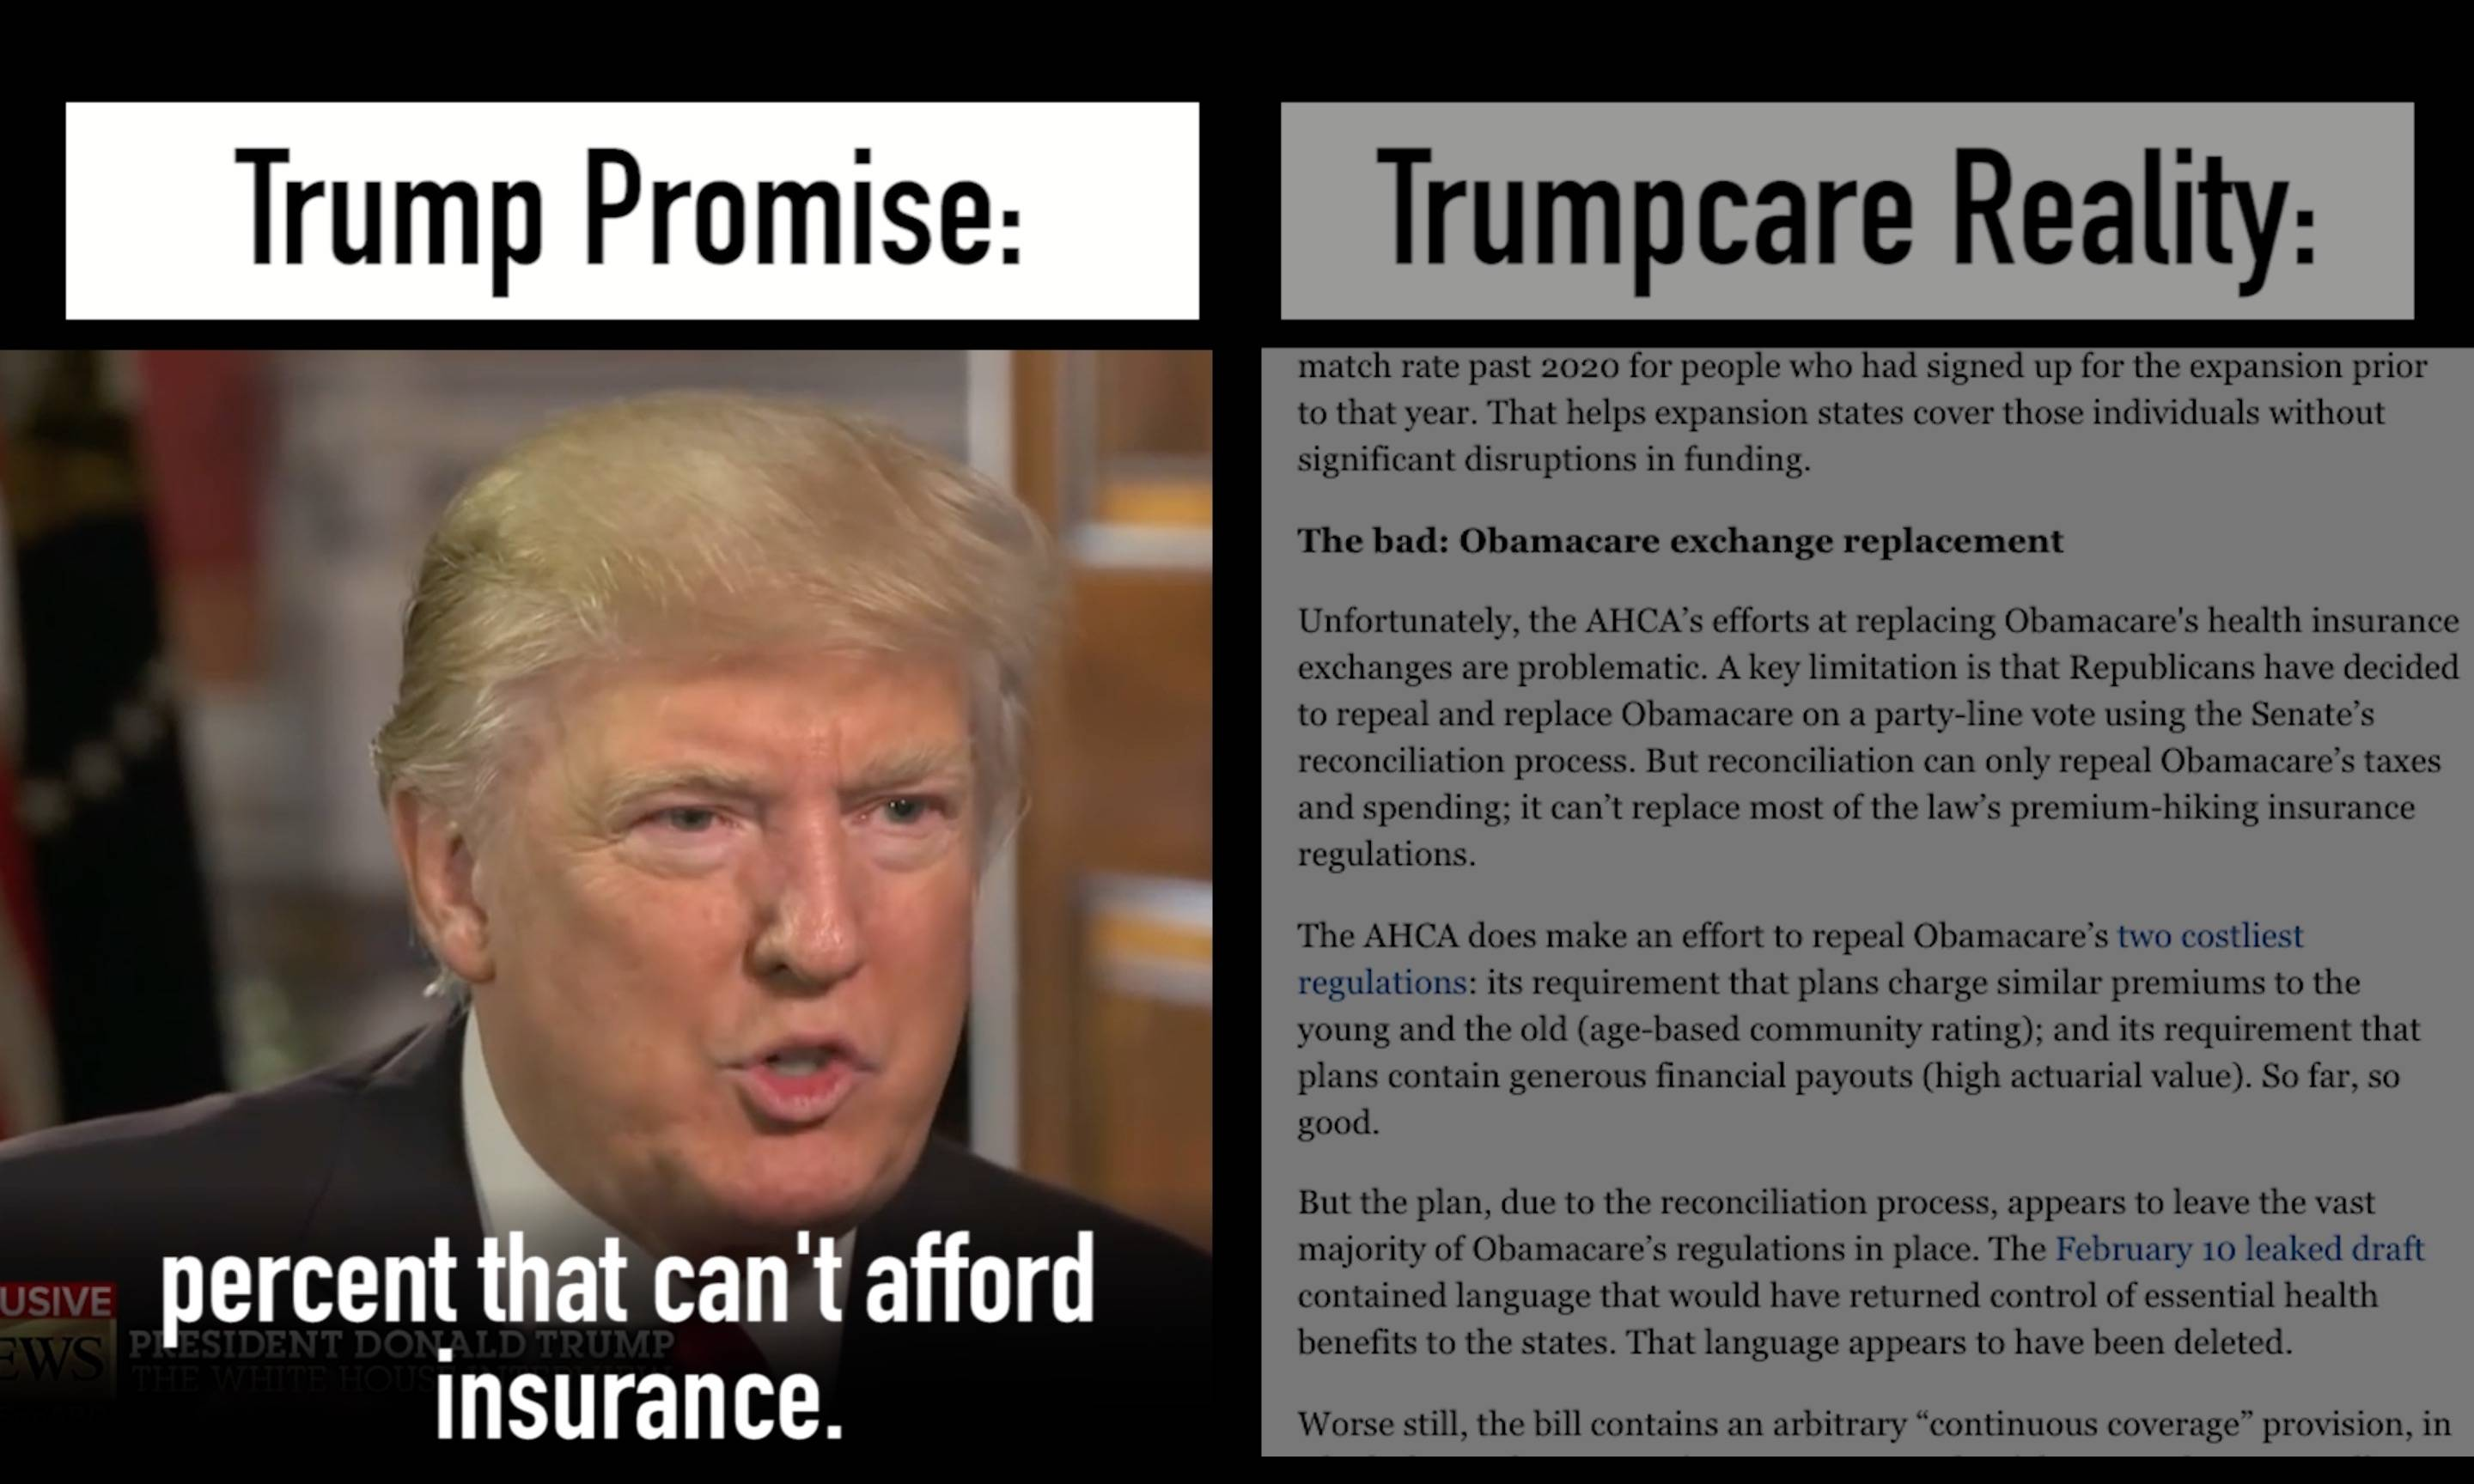 Trump has made a lot of promises about healthcare